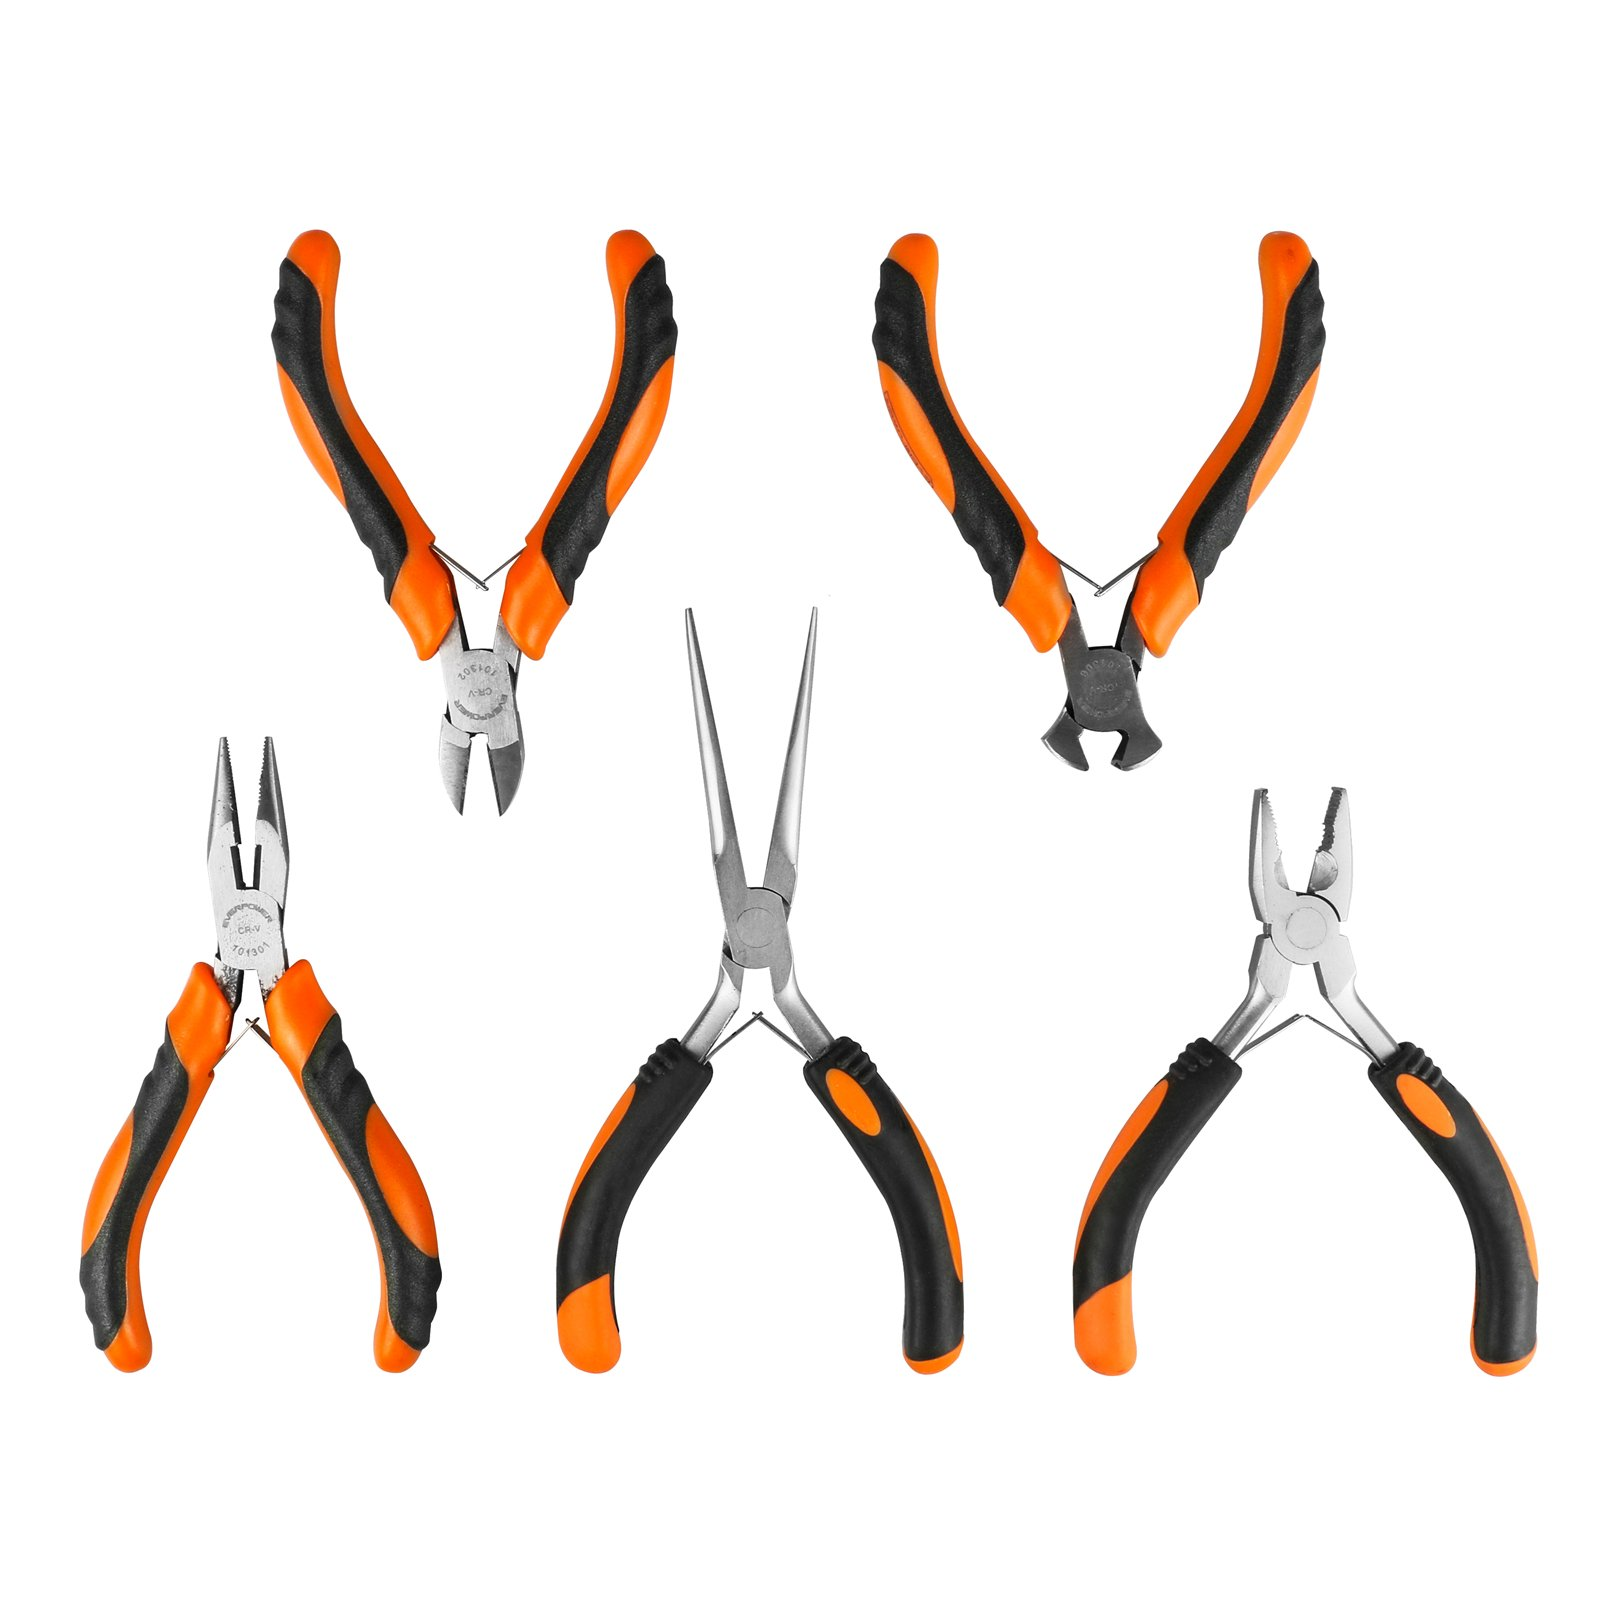 Mini Precision Pliers Set,5PCS 4.5inch Mini Pliers Set Pliers Diagonal Side Cutting Pliers Cable Wire Cutter Repair Pry Open Tool DIY Tool (5-piece Clamp) by MRCARTOOL (Image #1)